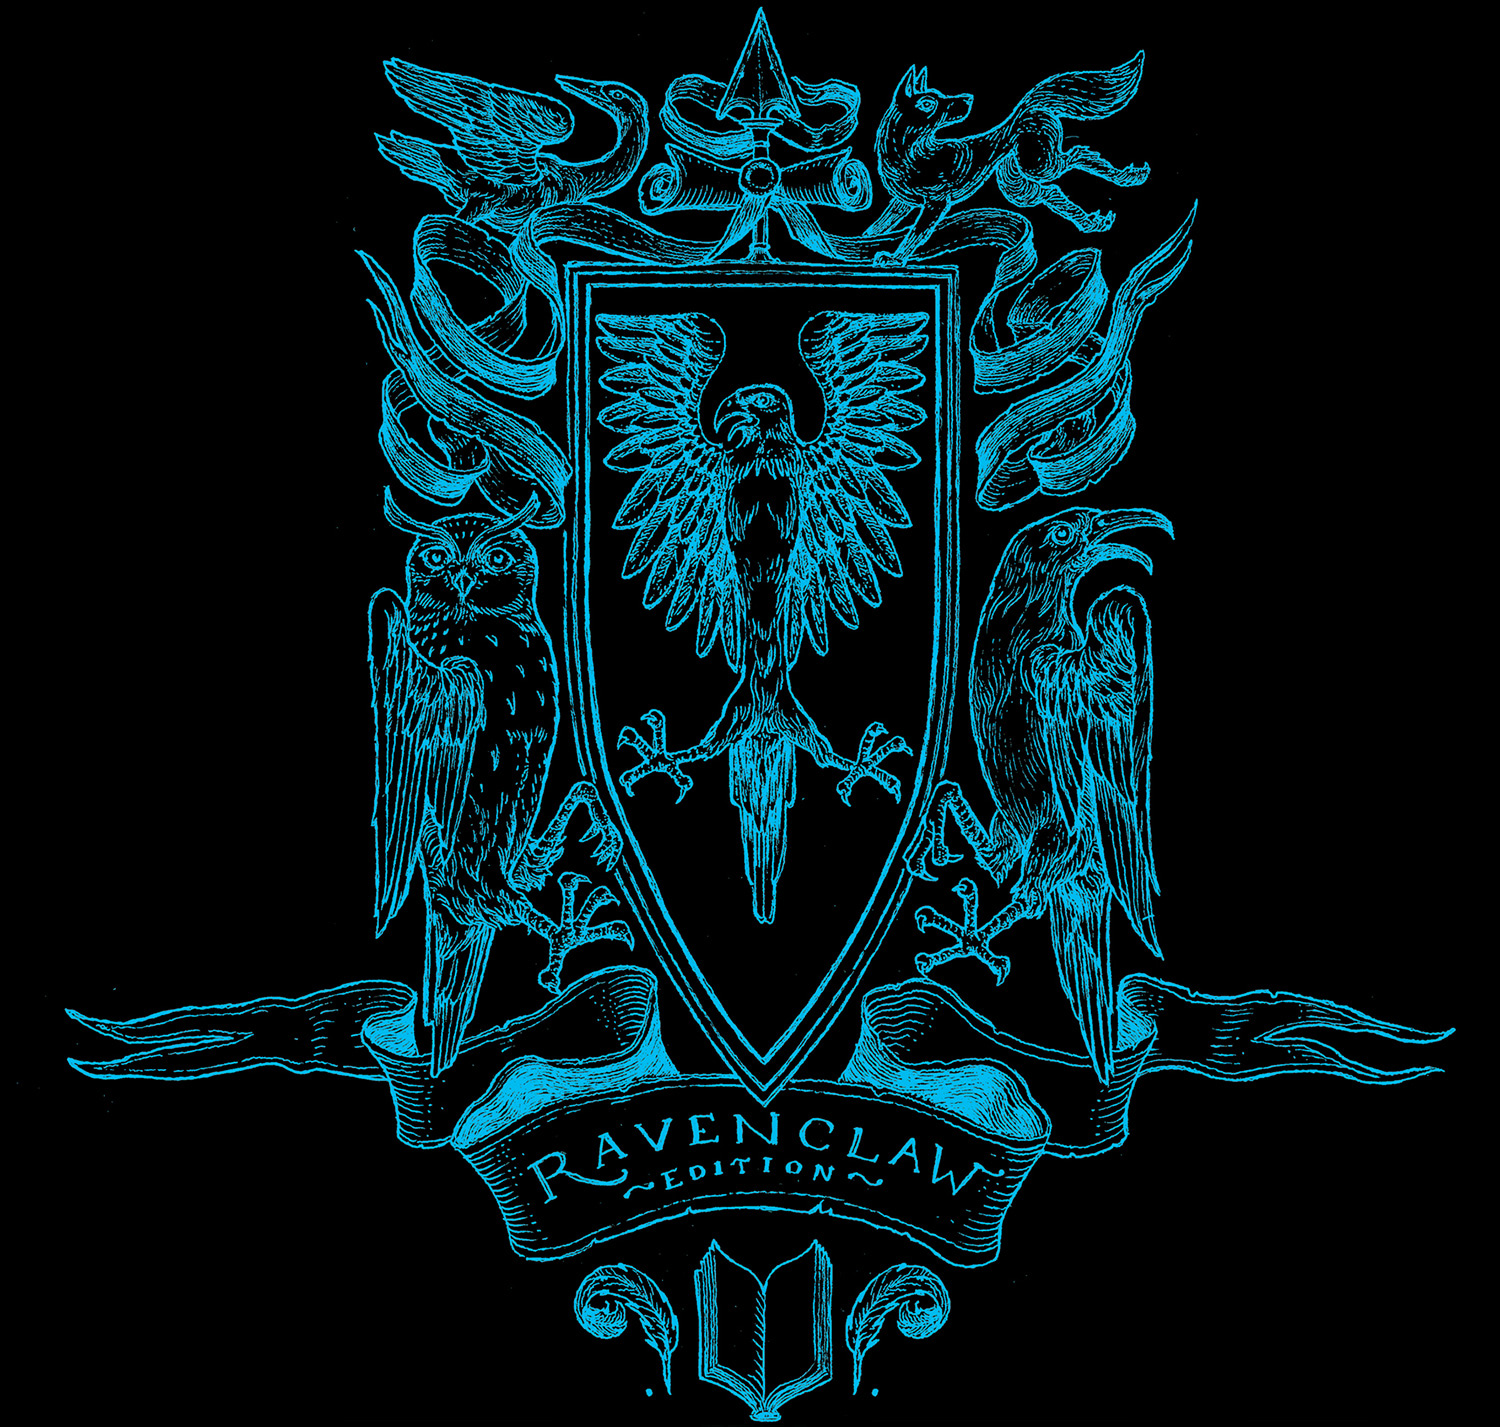 'Philosopher's Stone' house edition crest (Ravenclaw)